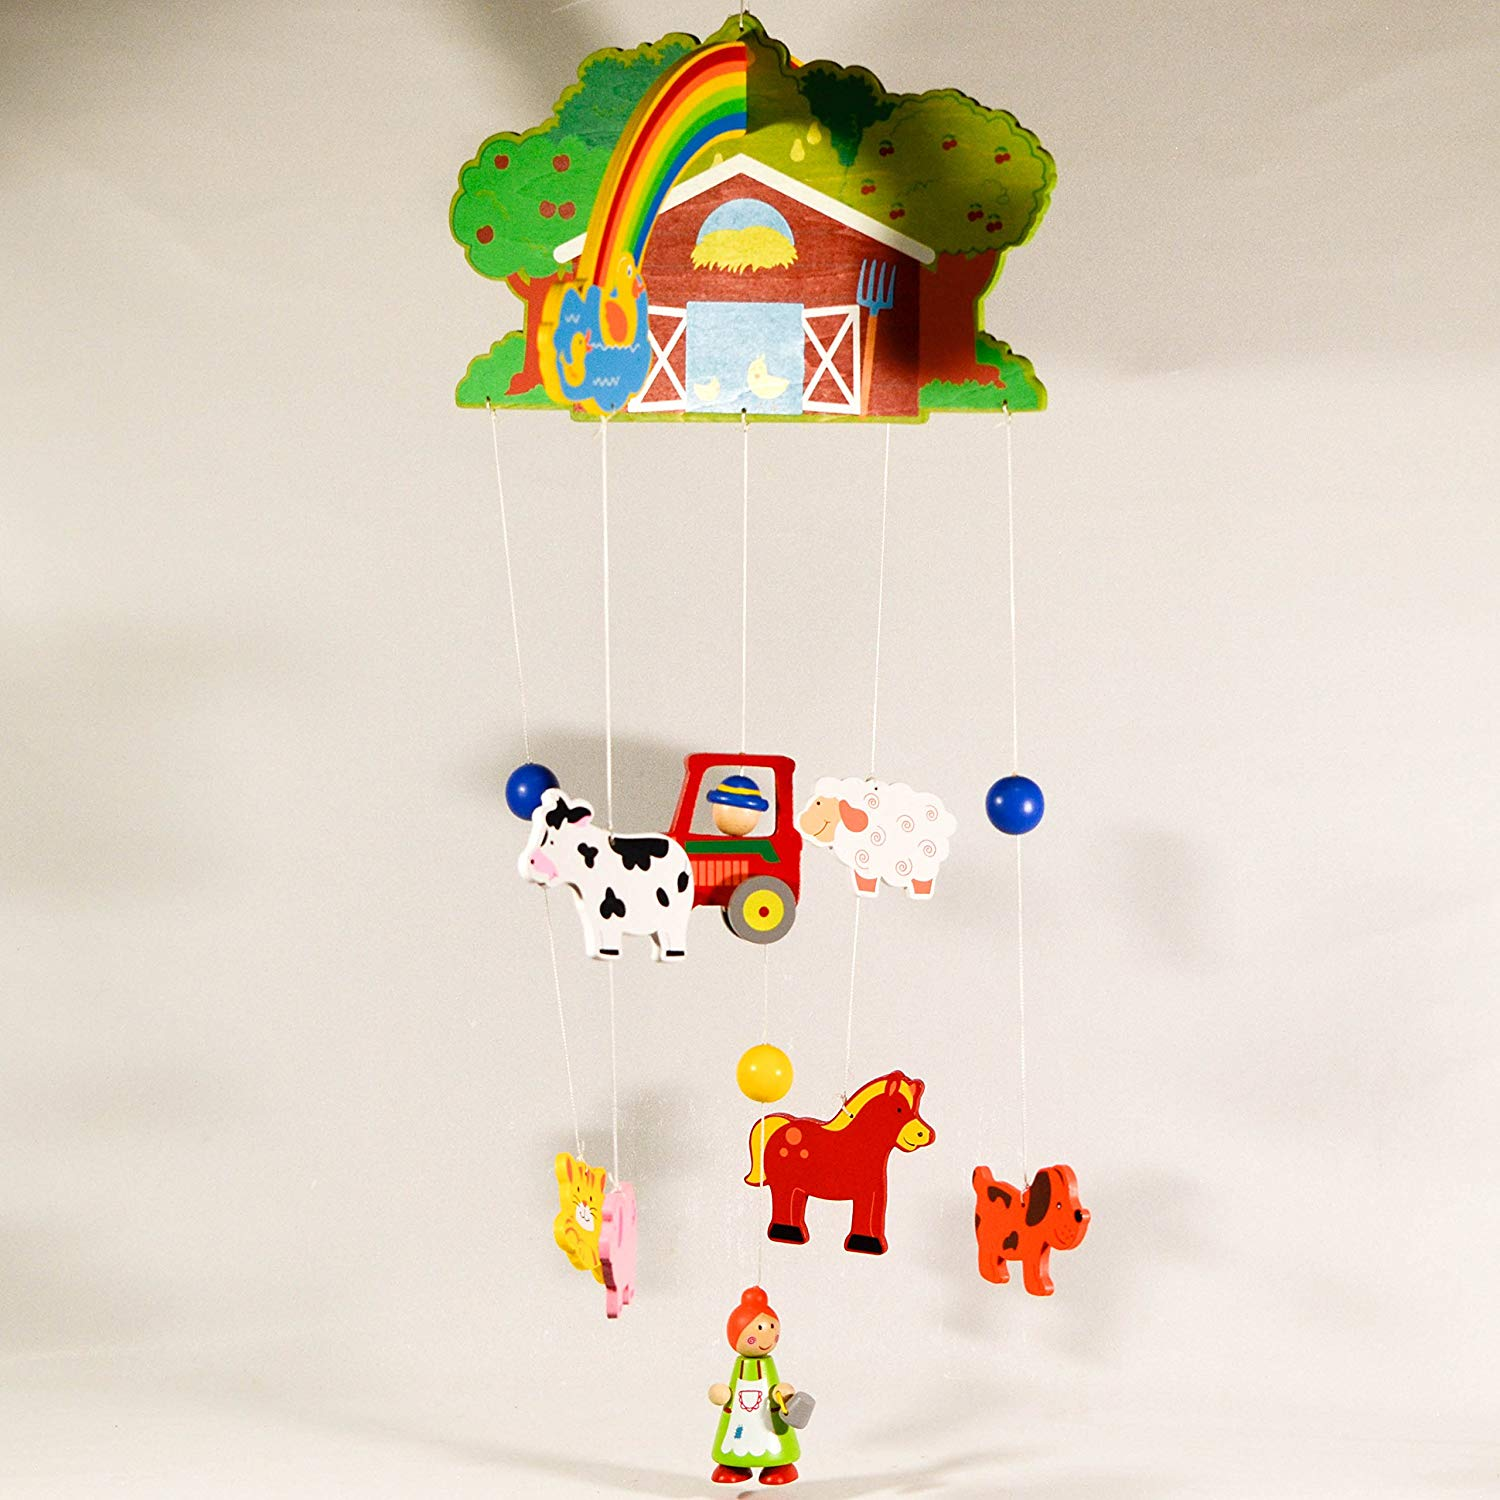 Wooden Hanging Mobile Farm - Nursery Decor - Baby Mobile Ornament - Baby Room Decor - Novelty Dinosaurs Decoration